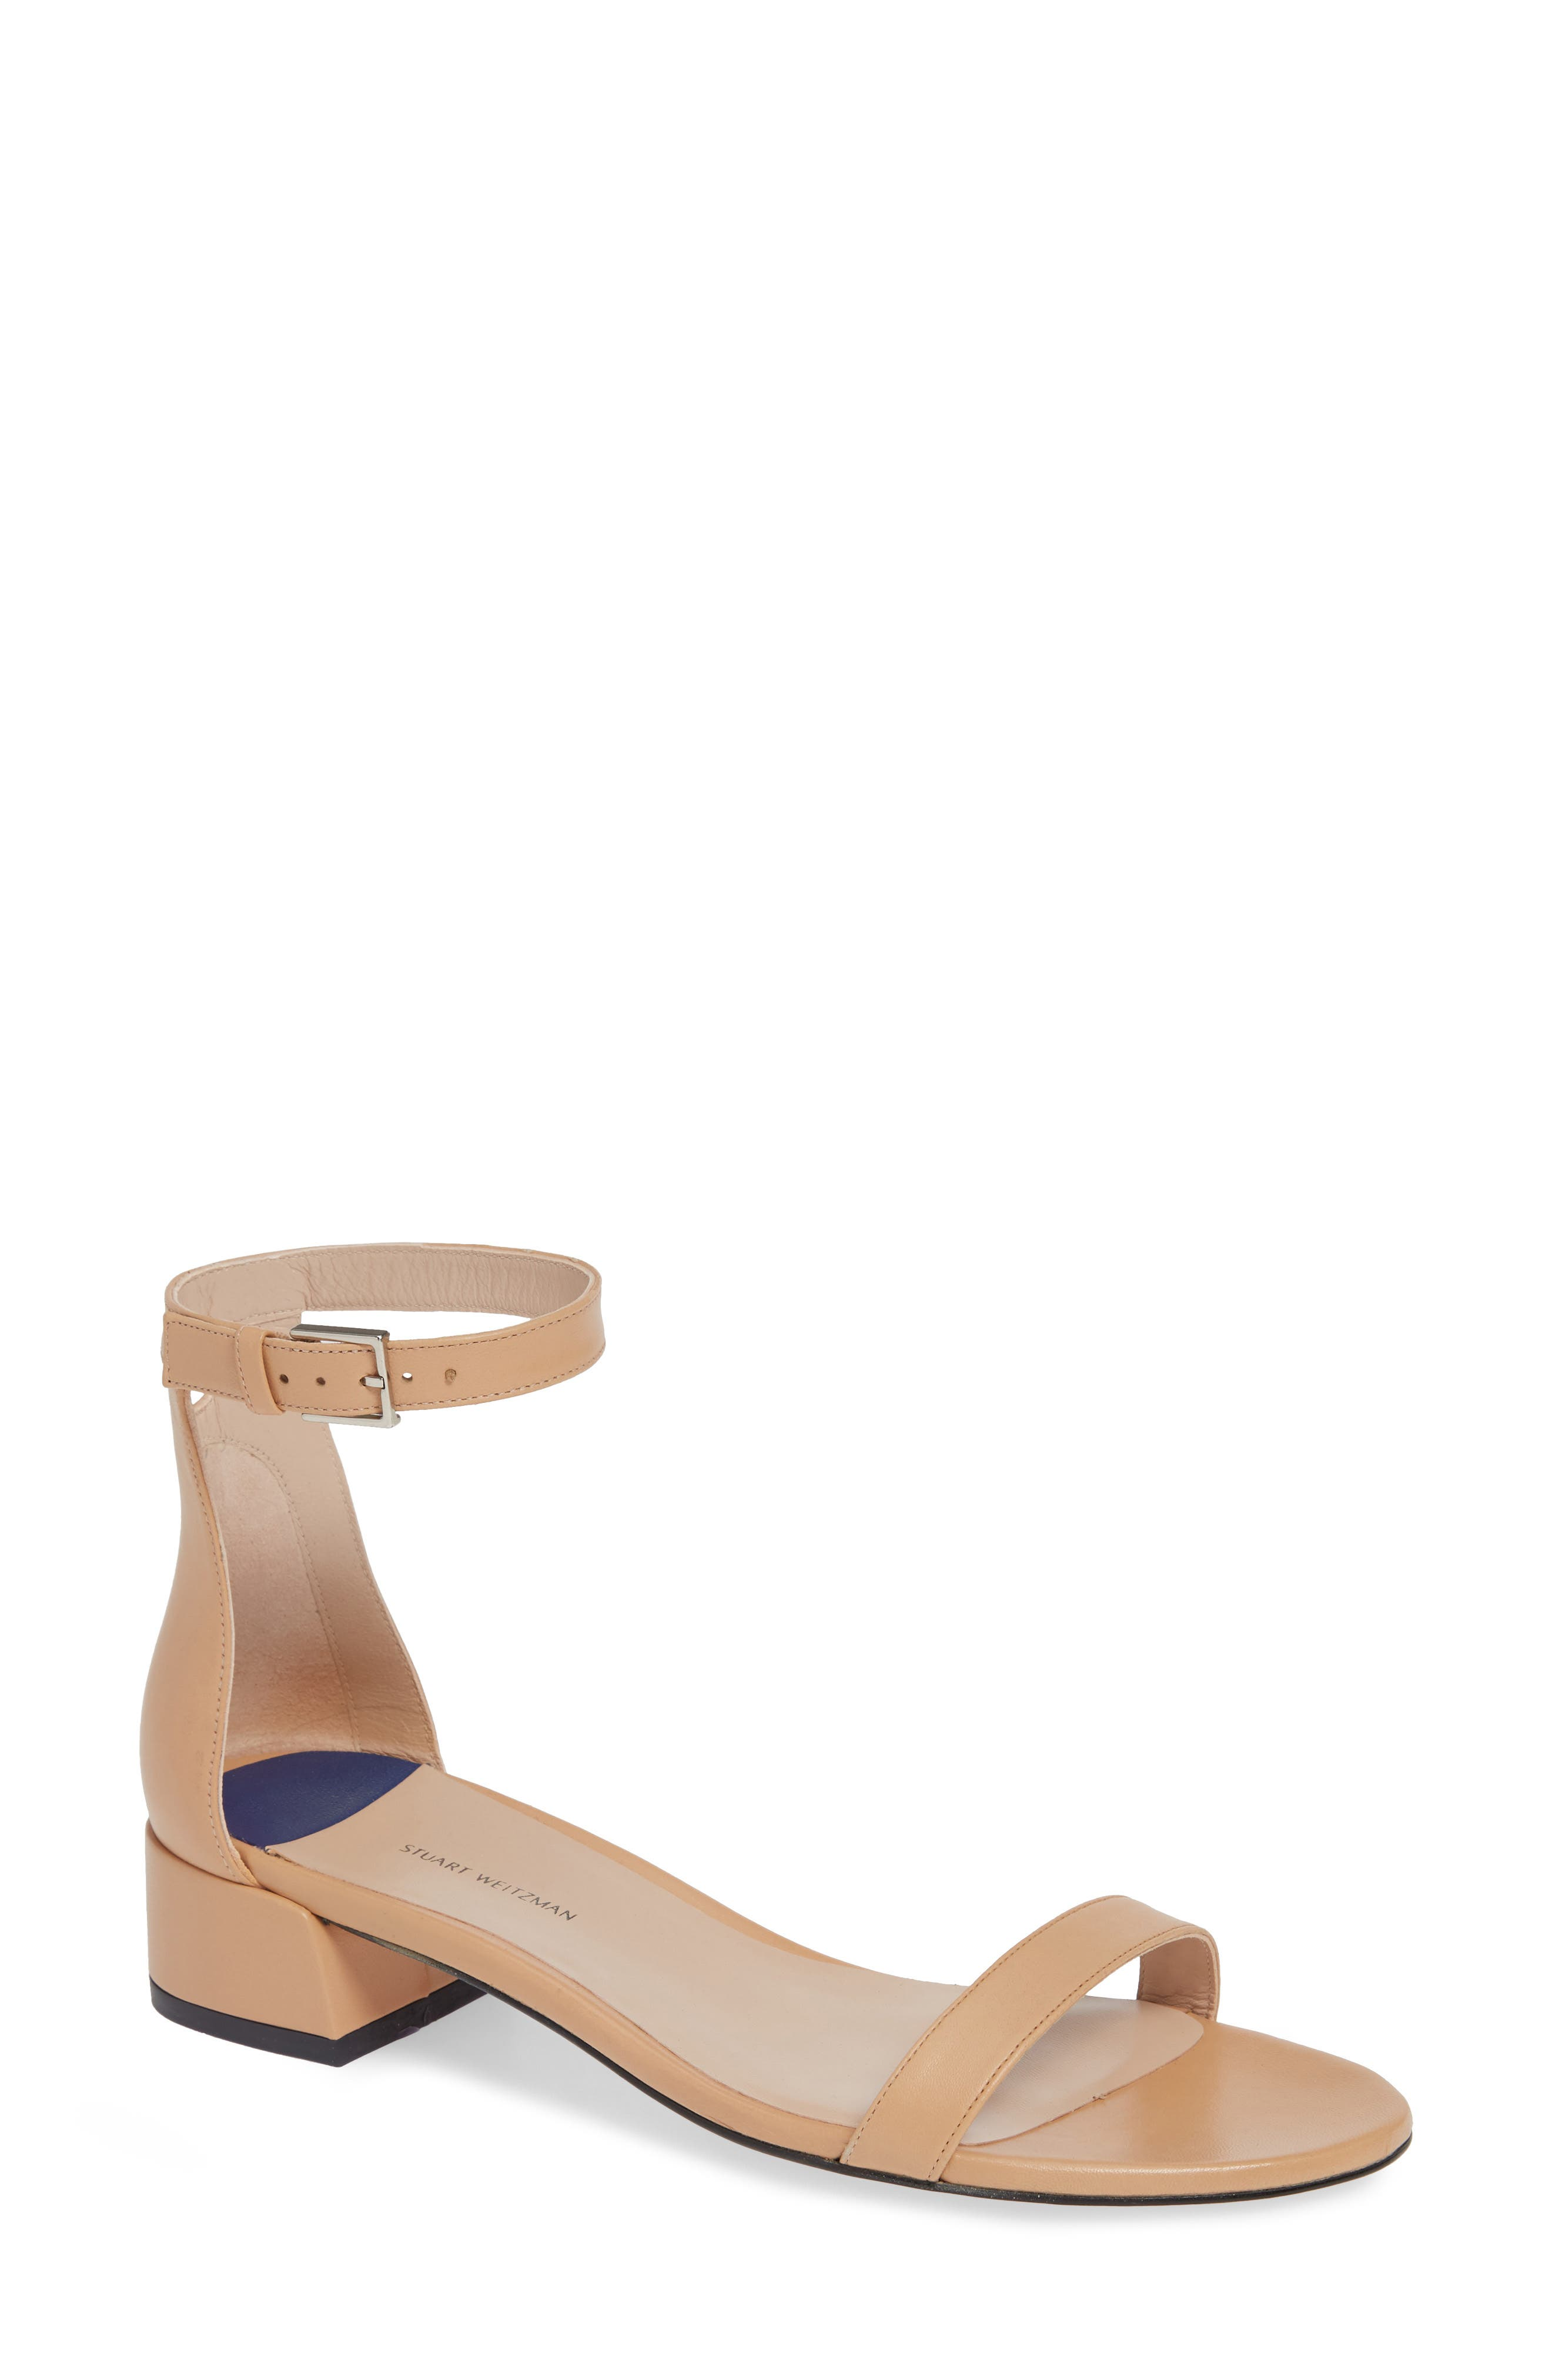 STUART WEITZMAN Nudist Sandal, Main, color, 273